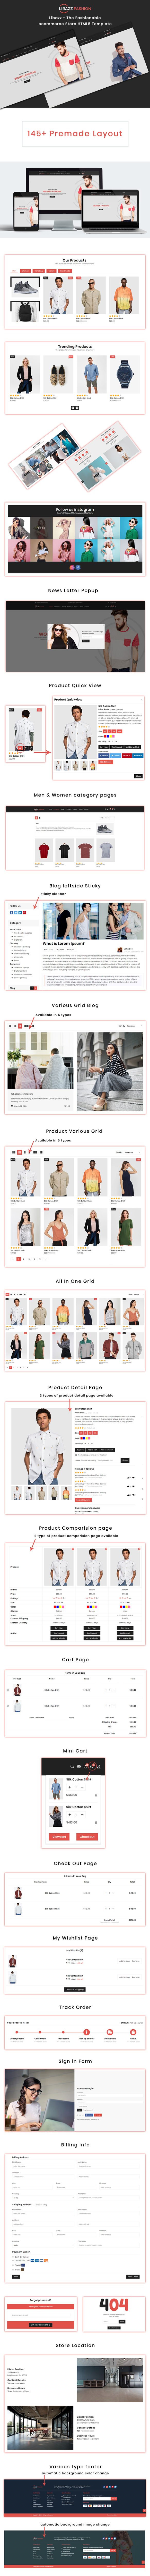 Libazz - The Responsive Bootstrap 4 Multipurpose eCommerce Template - 6